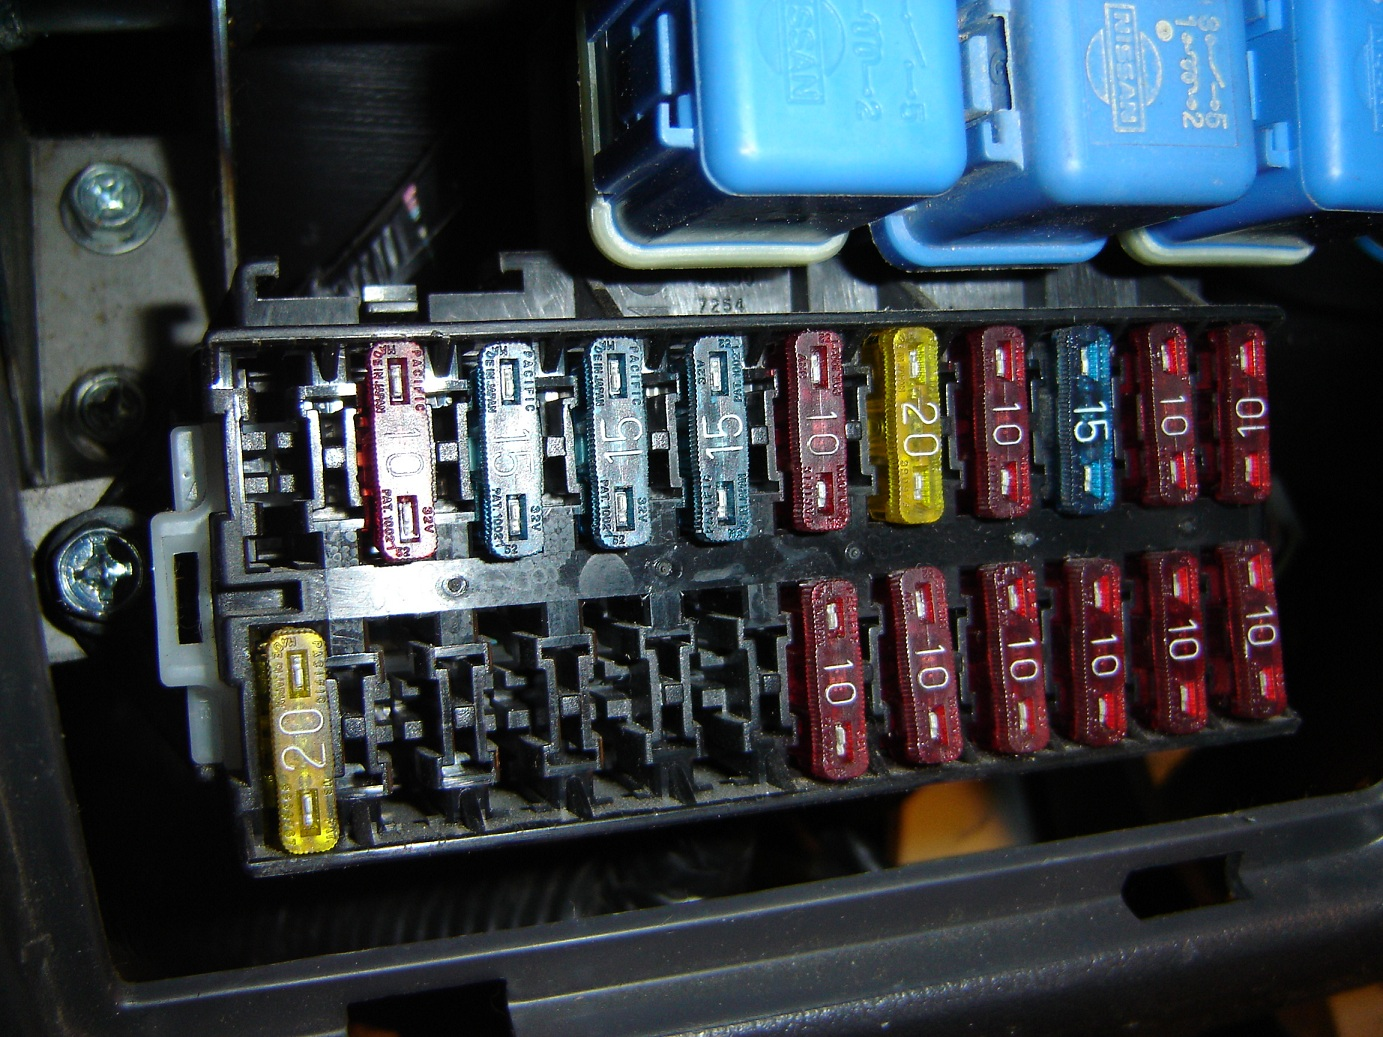 D21 Fuse Box Auto Electrical Wiring Diagram Peugeot 307